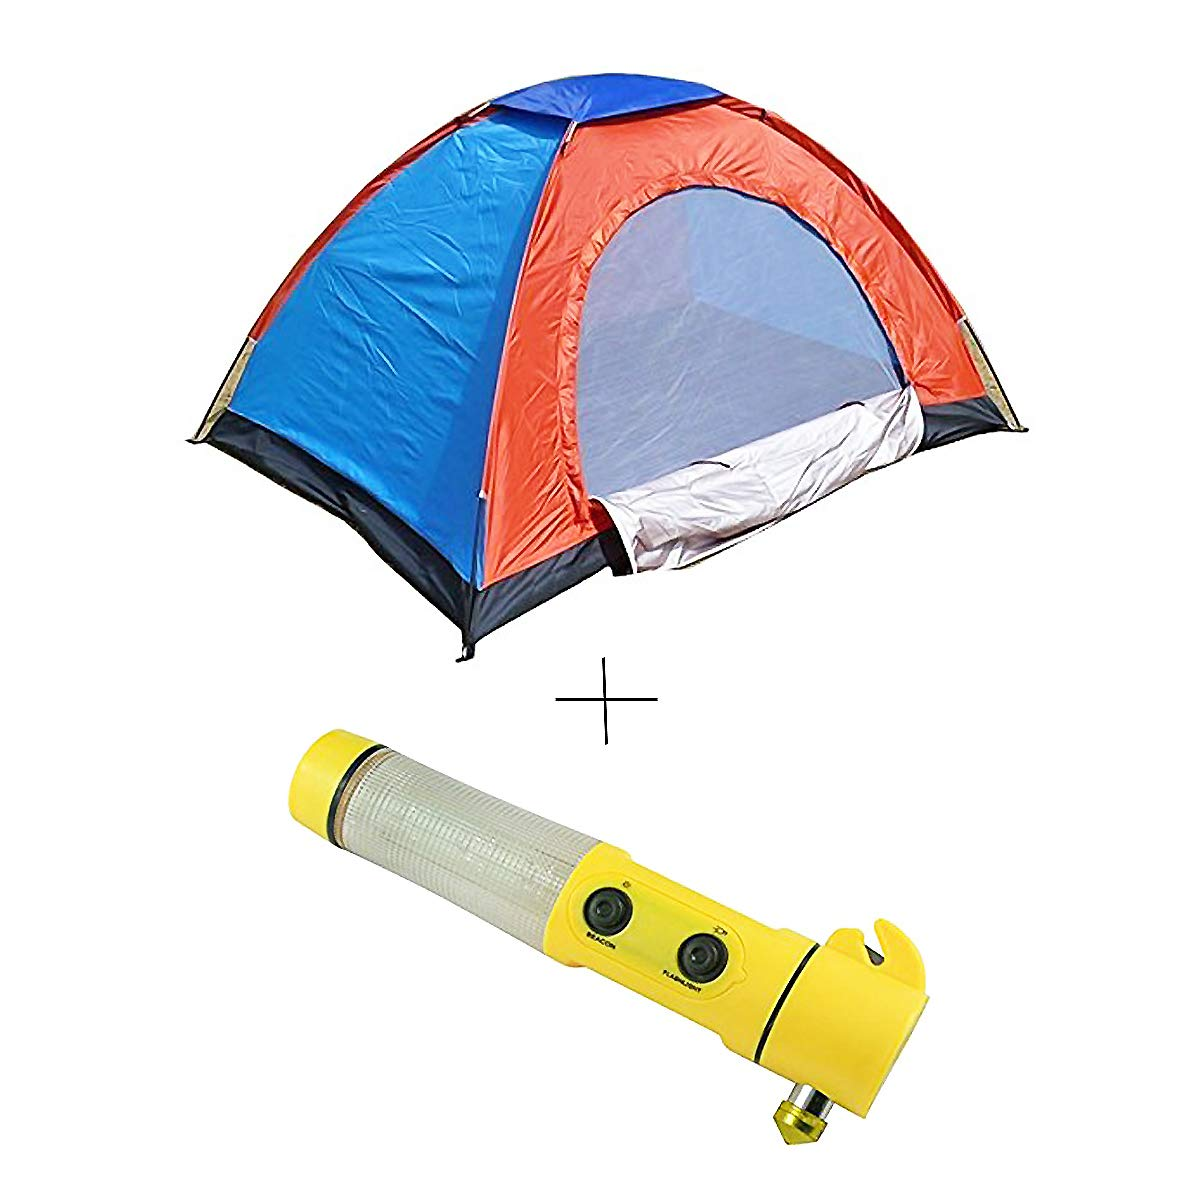 shopper52 Camping Tent Portable Foldable Tent for Picnic/Hiking/Trekking Tent Dome Tent 4 Person Tent with Car LED Flashlight Emergency Hammer Torch - 4TENTCRTORH